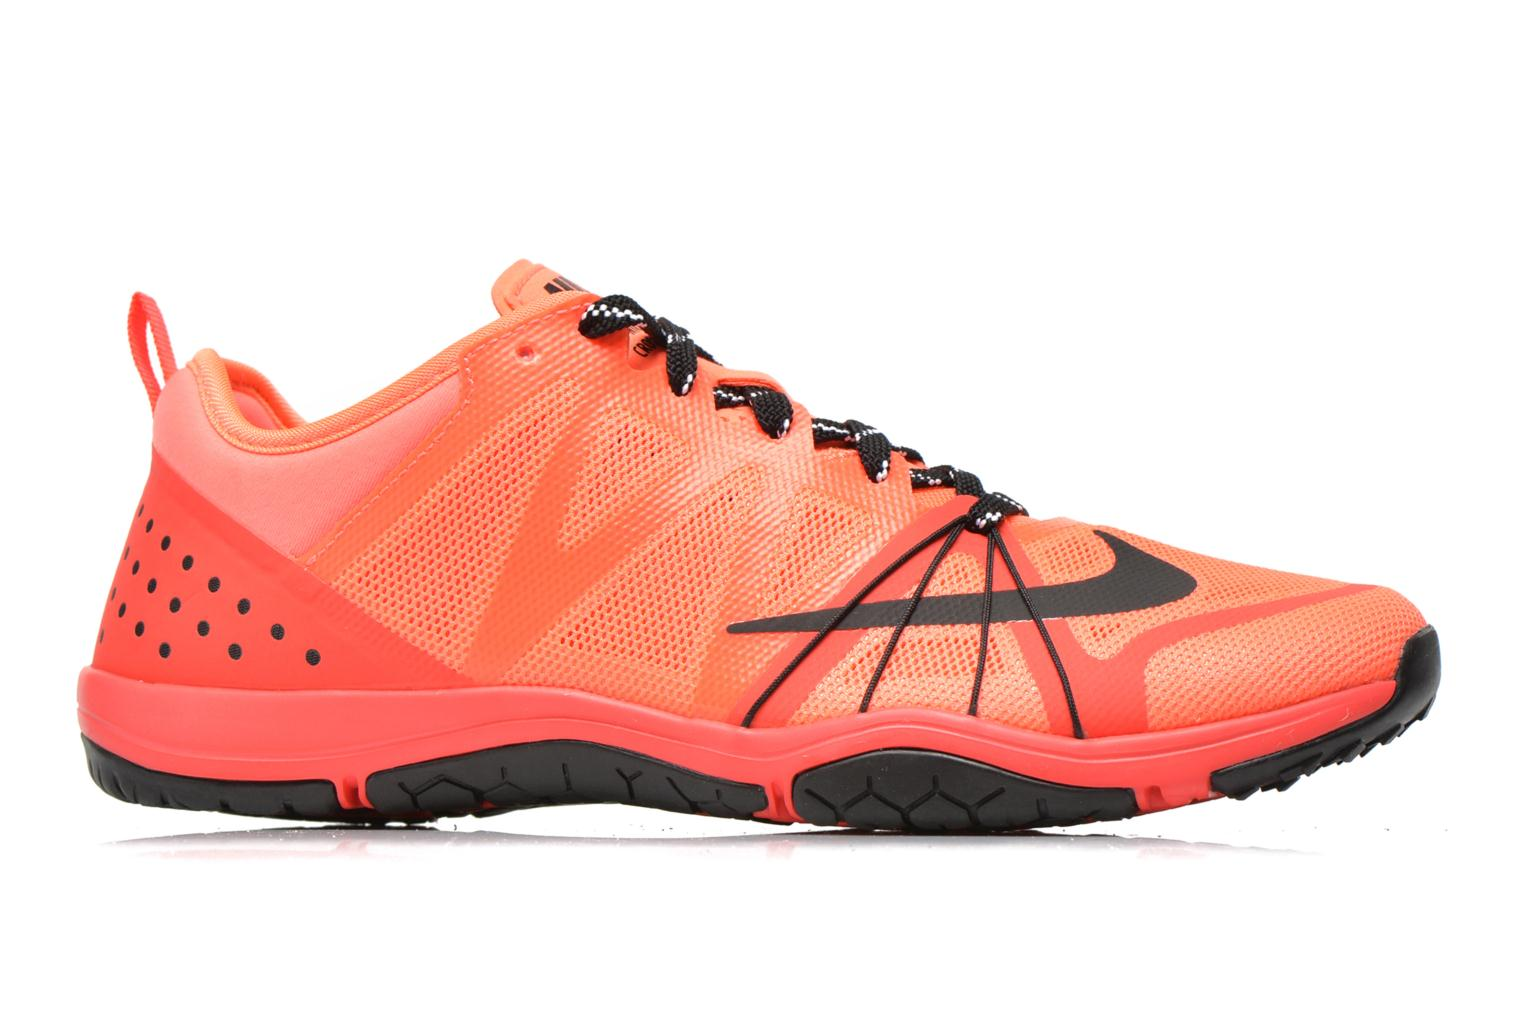 Wmns Nike Free Cross Compete Brght Mng/Blk-Brght Crmsn-Blk